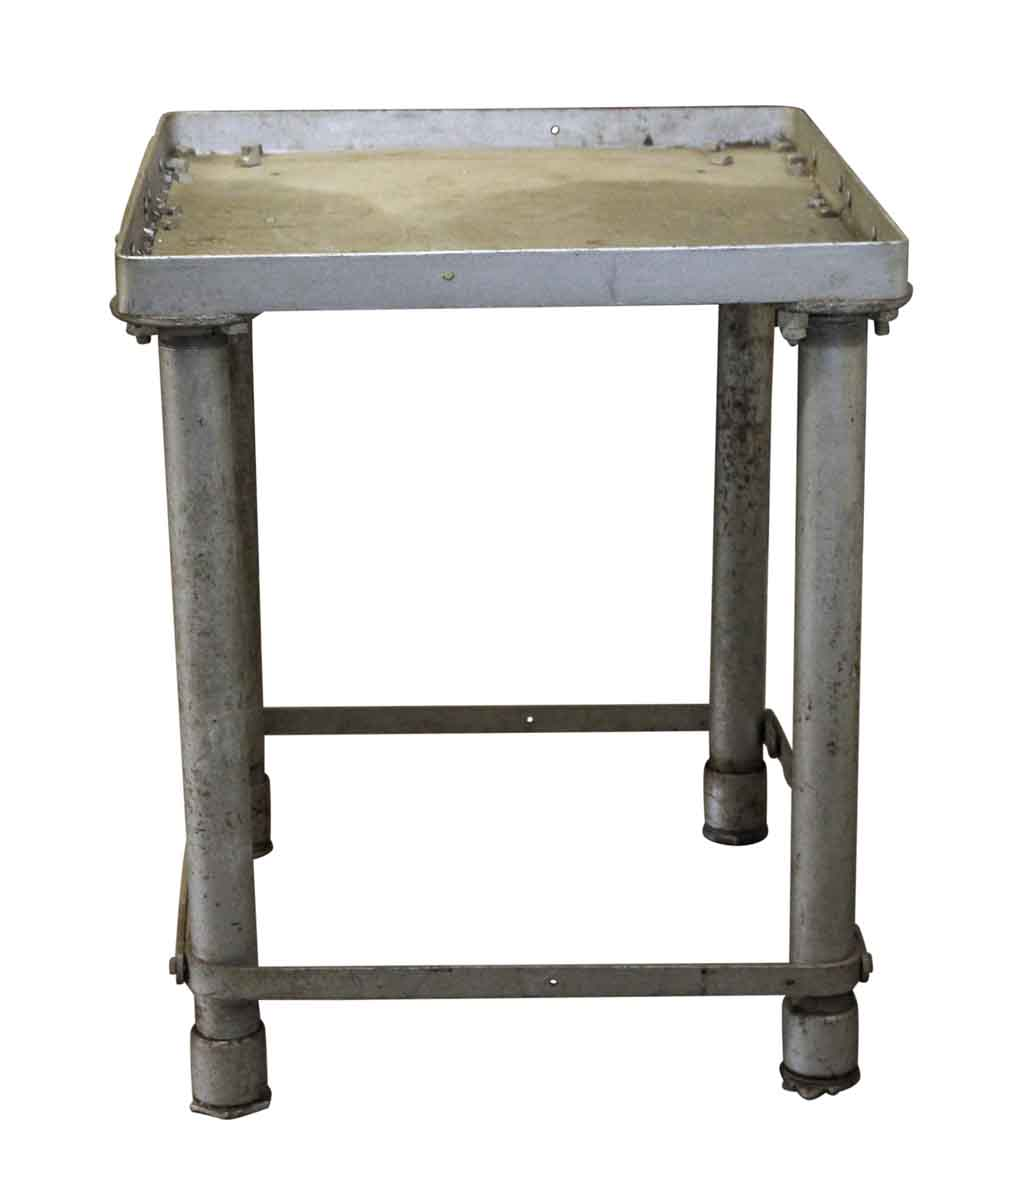 Showroom Furniture For Sale: Reclaimed Used Gray Industrial Metal Table